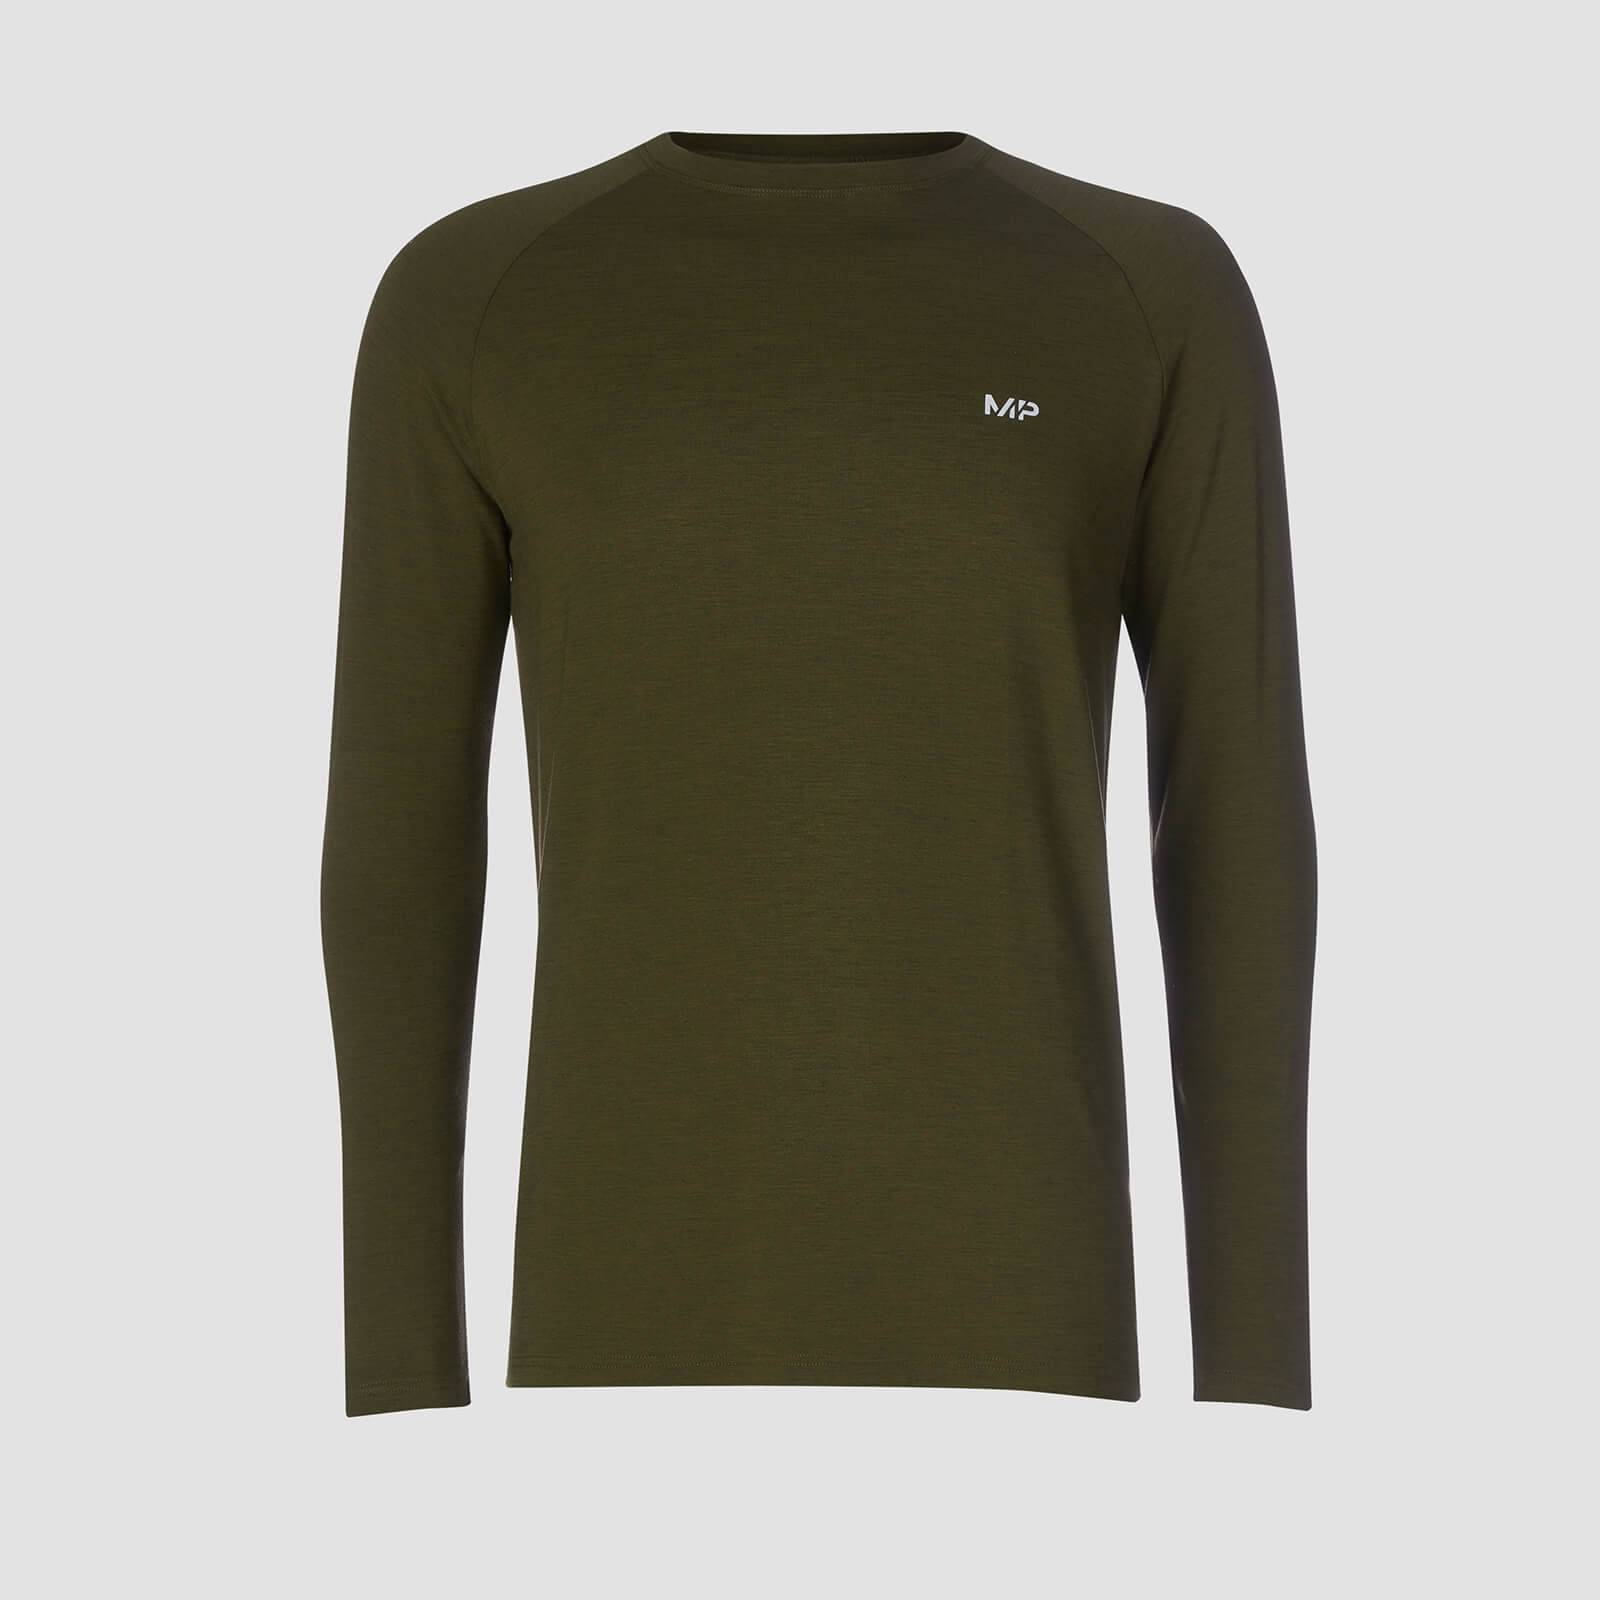 Myprotein T-shirt Performance Long Sleeve MP - Verde militare/Nero - XS